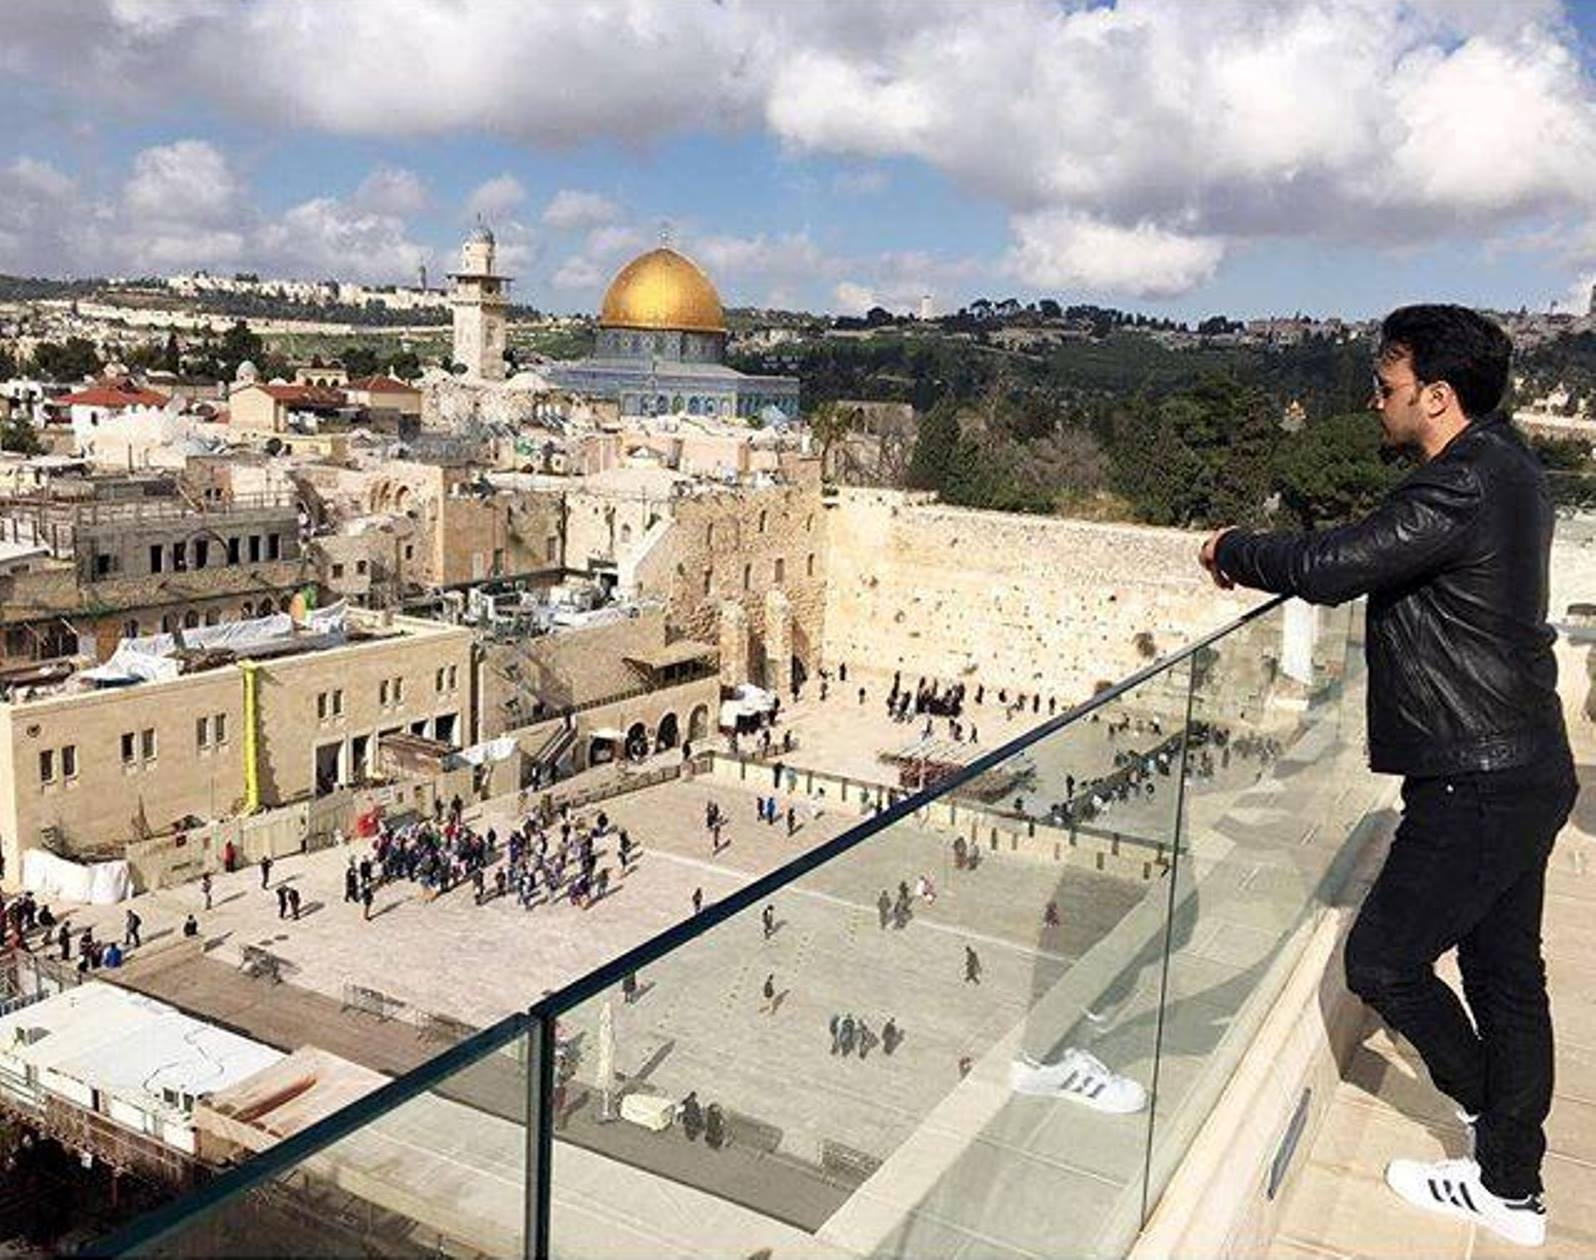 Luis Fonsi looking out at the Western Wall and Temple Mount in Jerusalem. Photo via Facebook